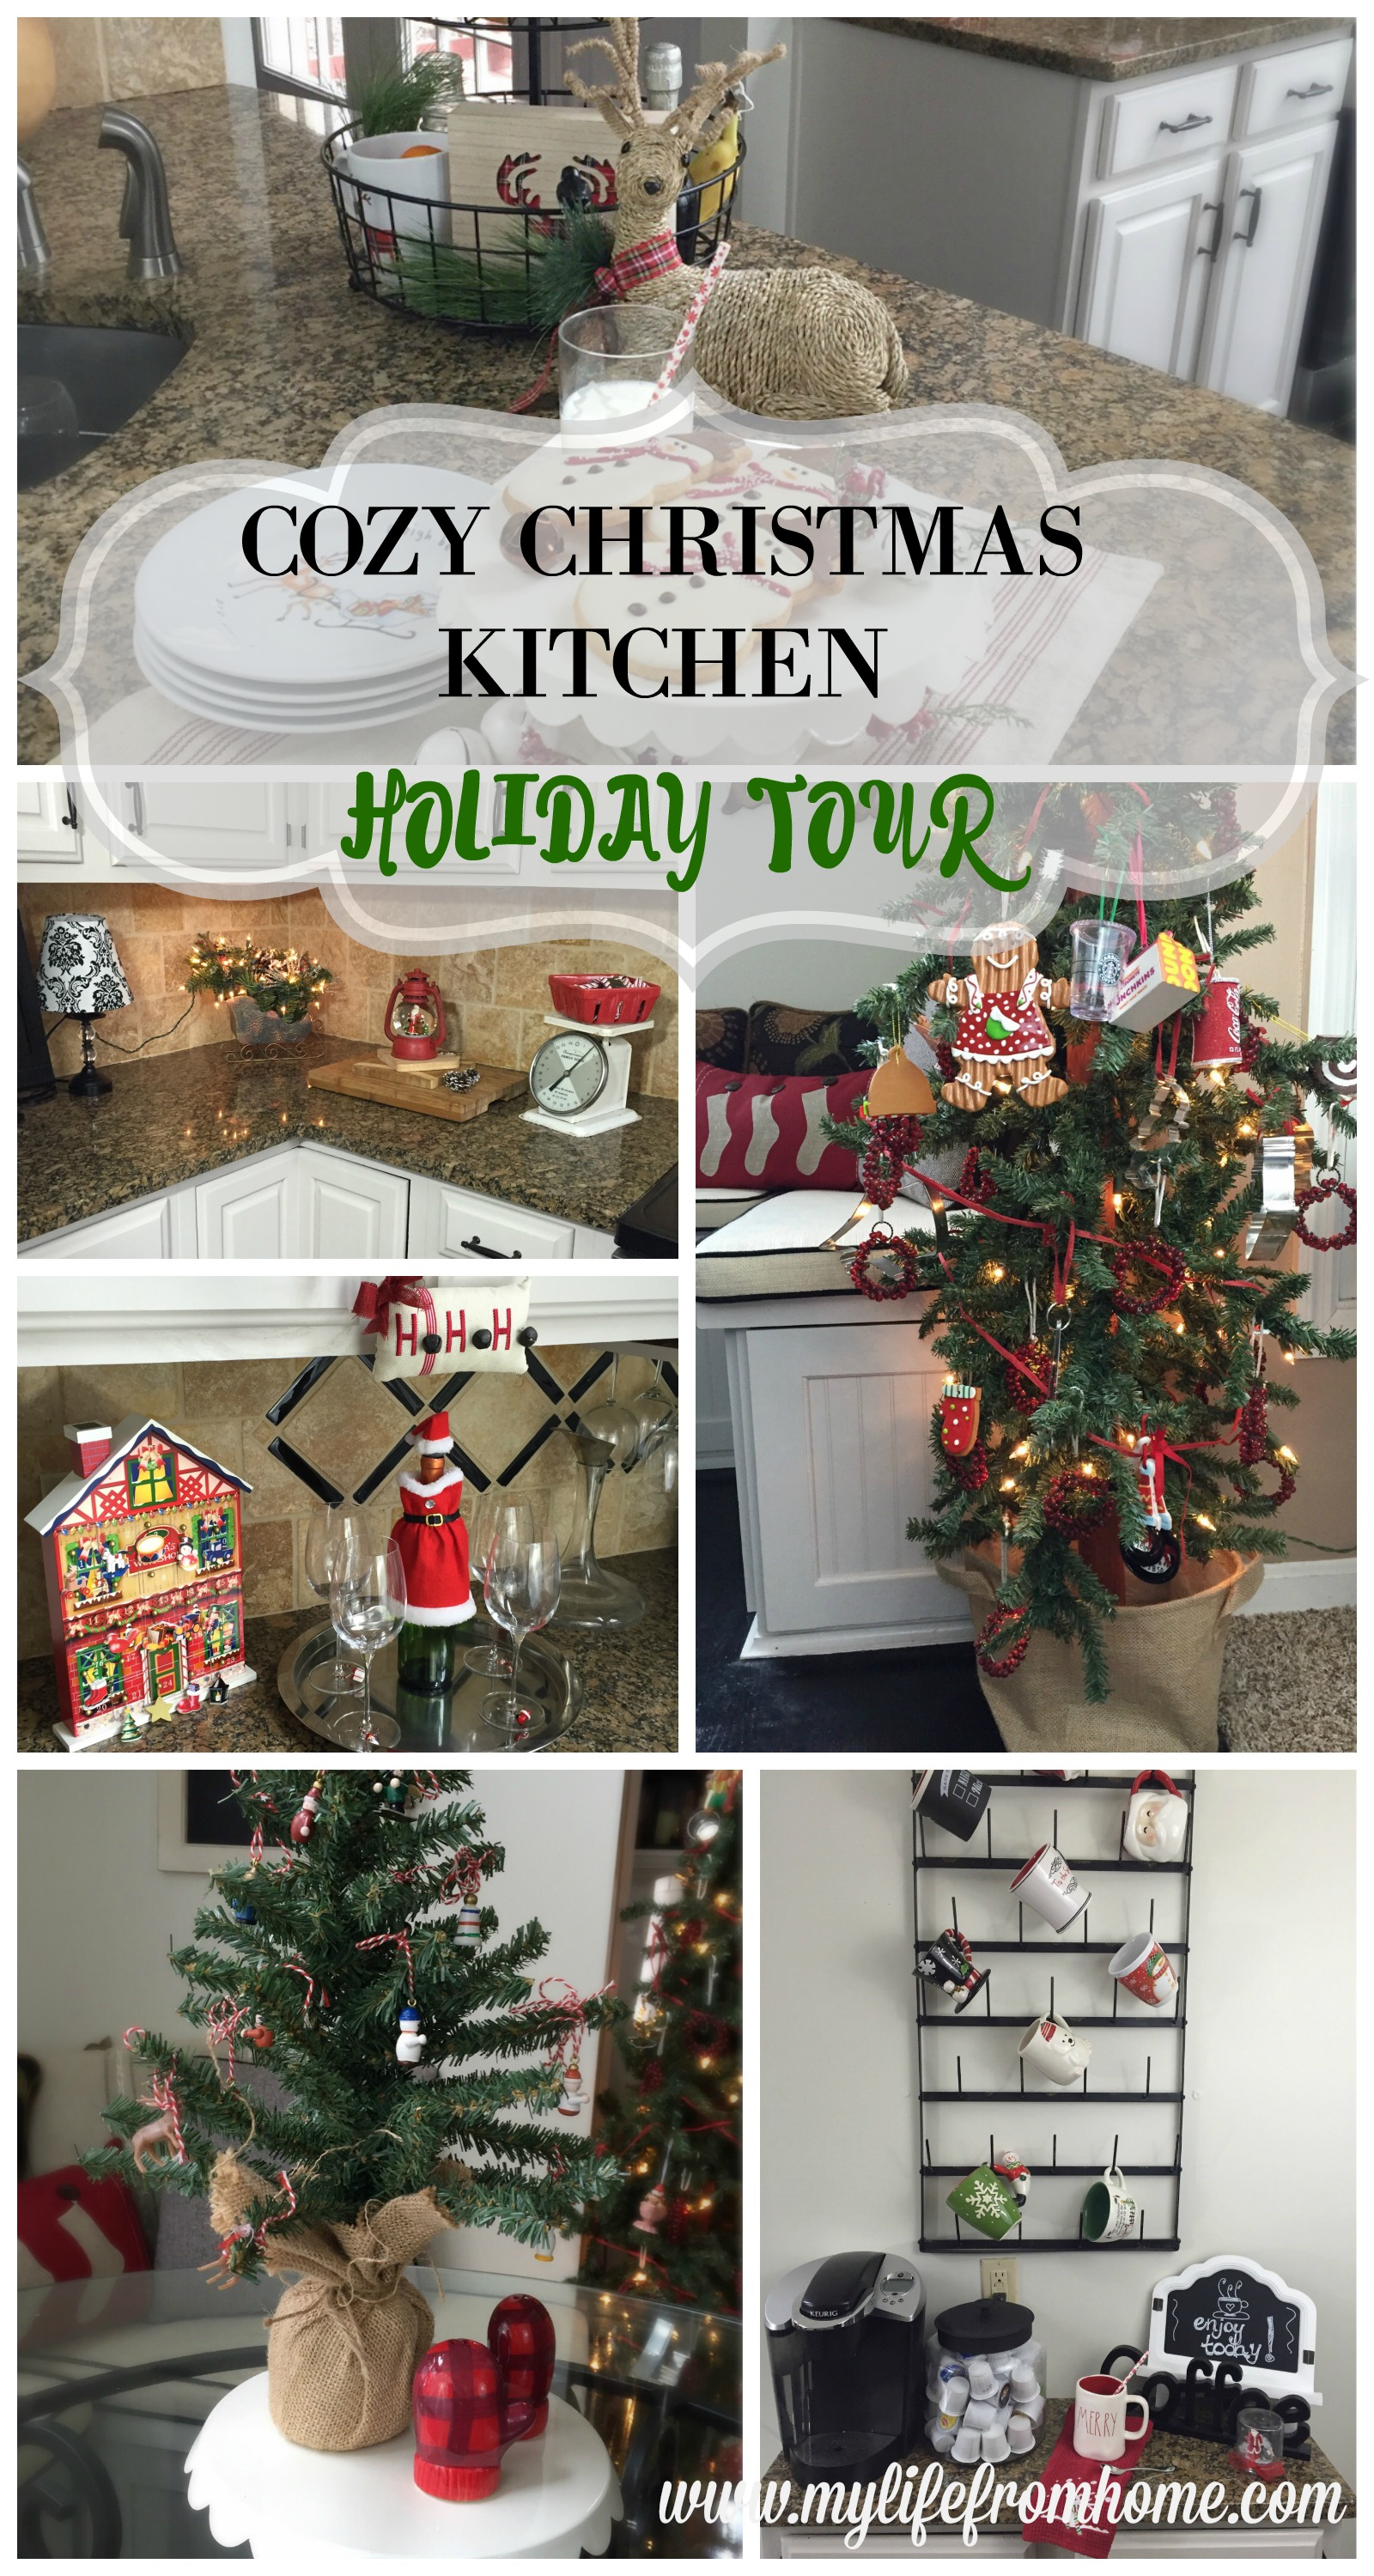 Cozy Christmas Kitchen Holiday Tour by www.mylifefromhome.com